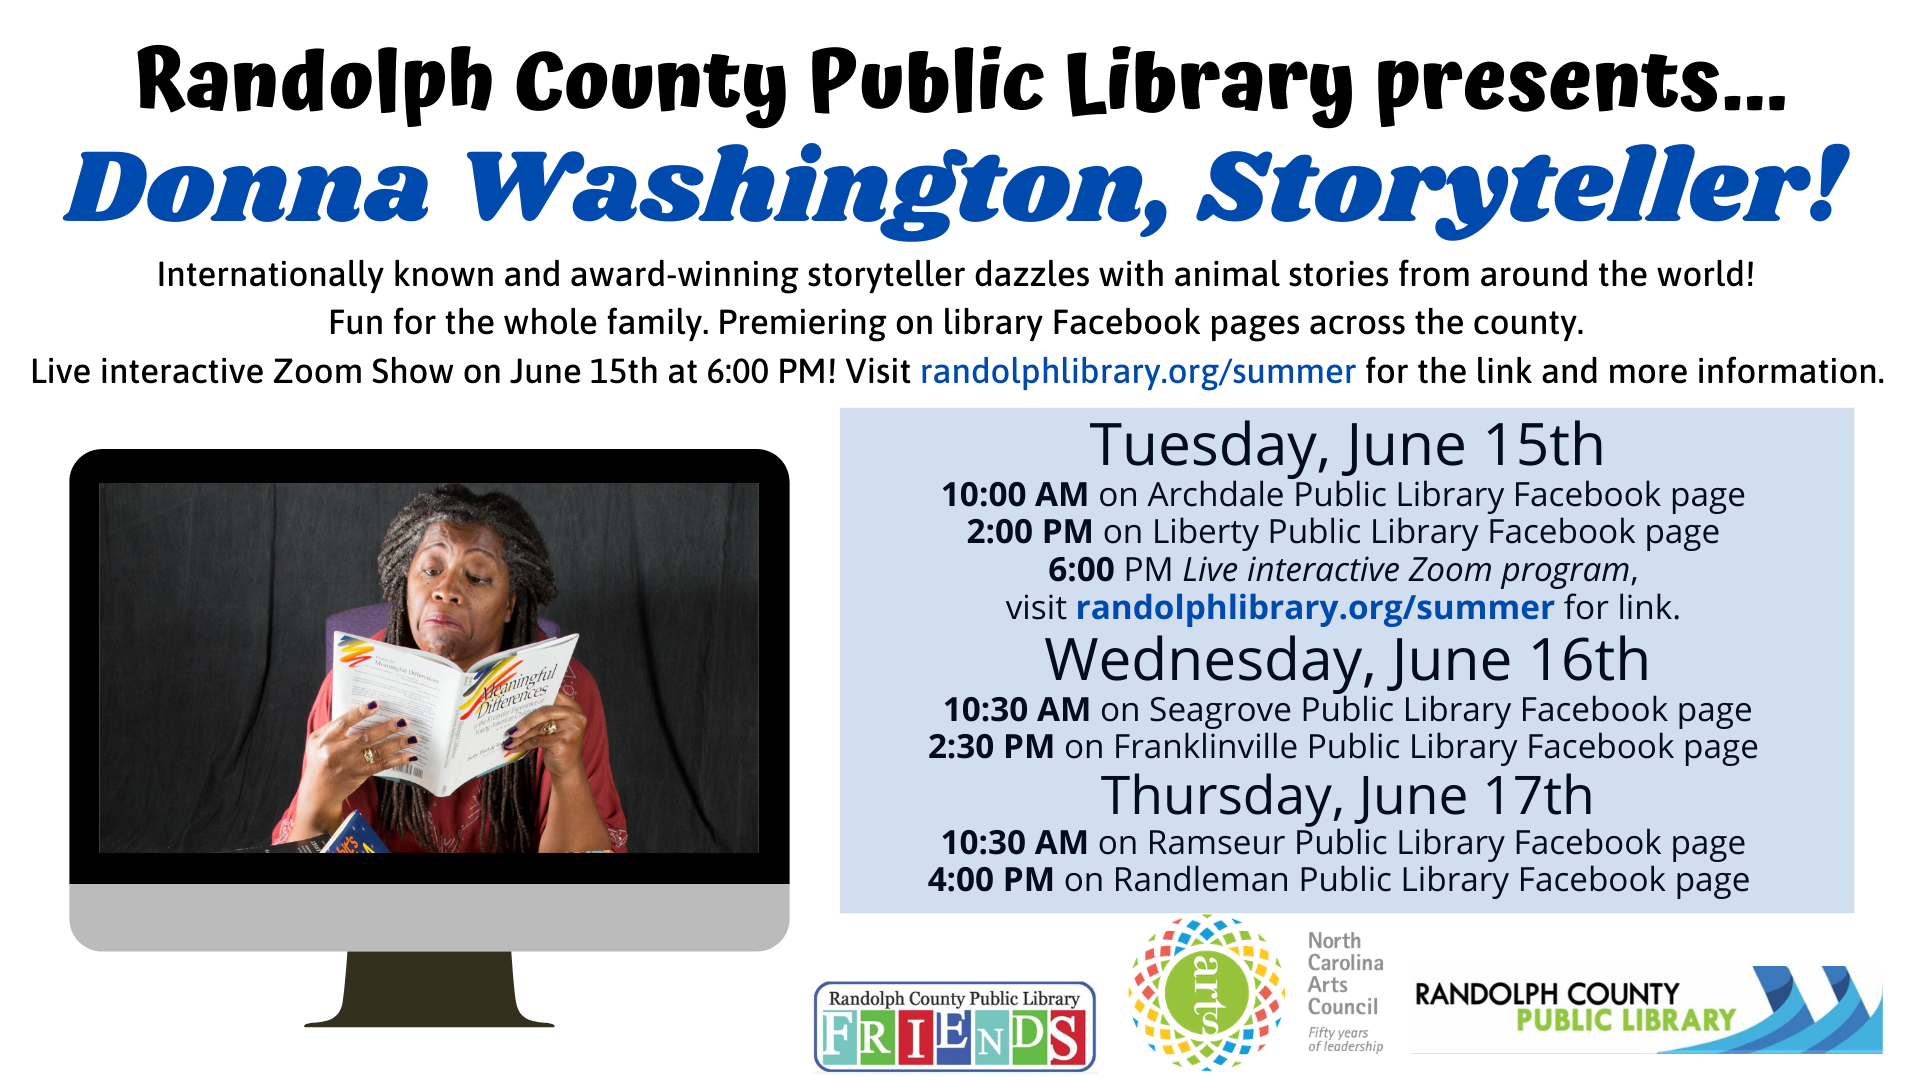 An event at the Asheboro Public Library! FREE